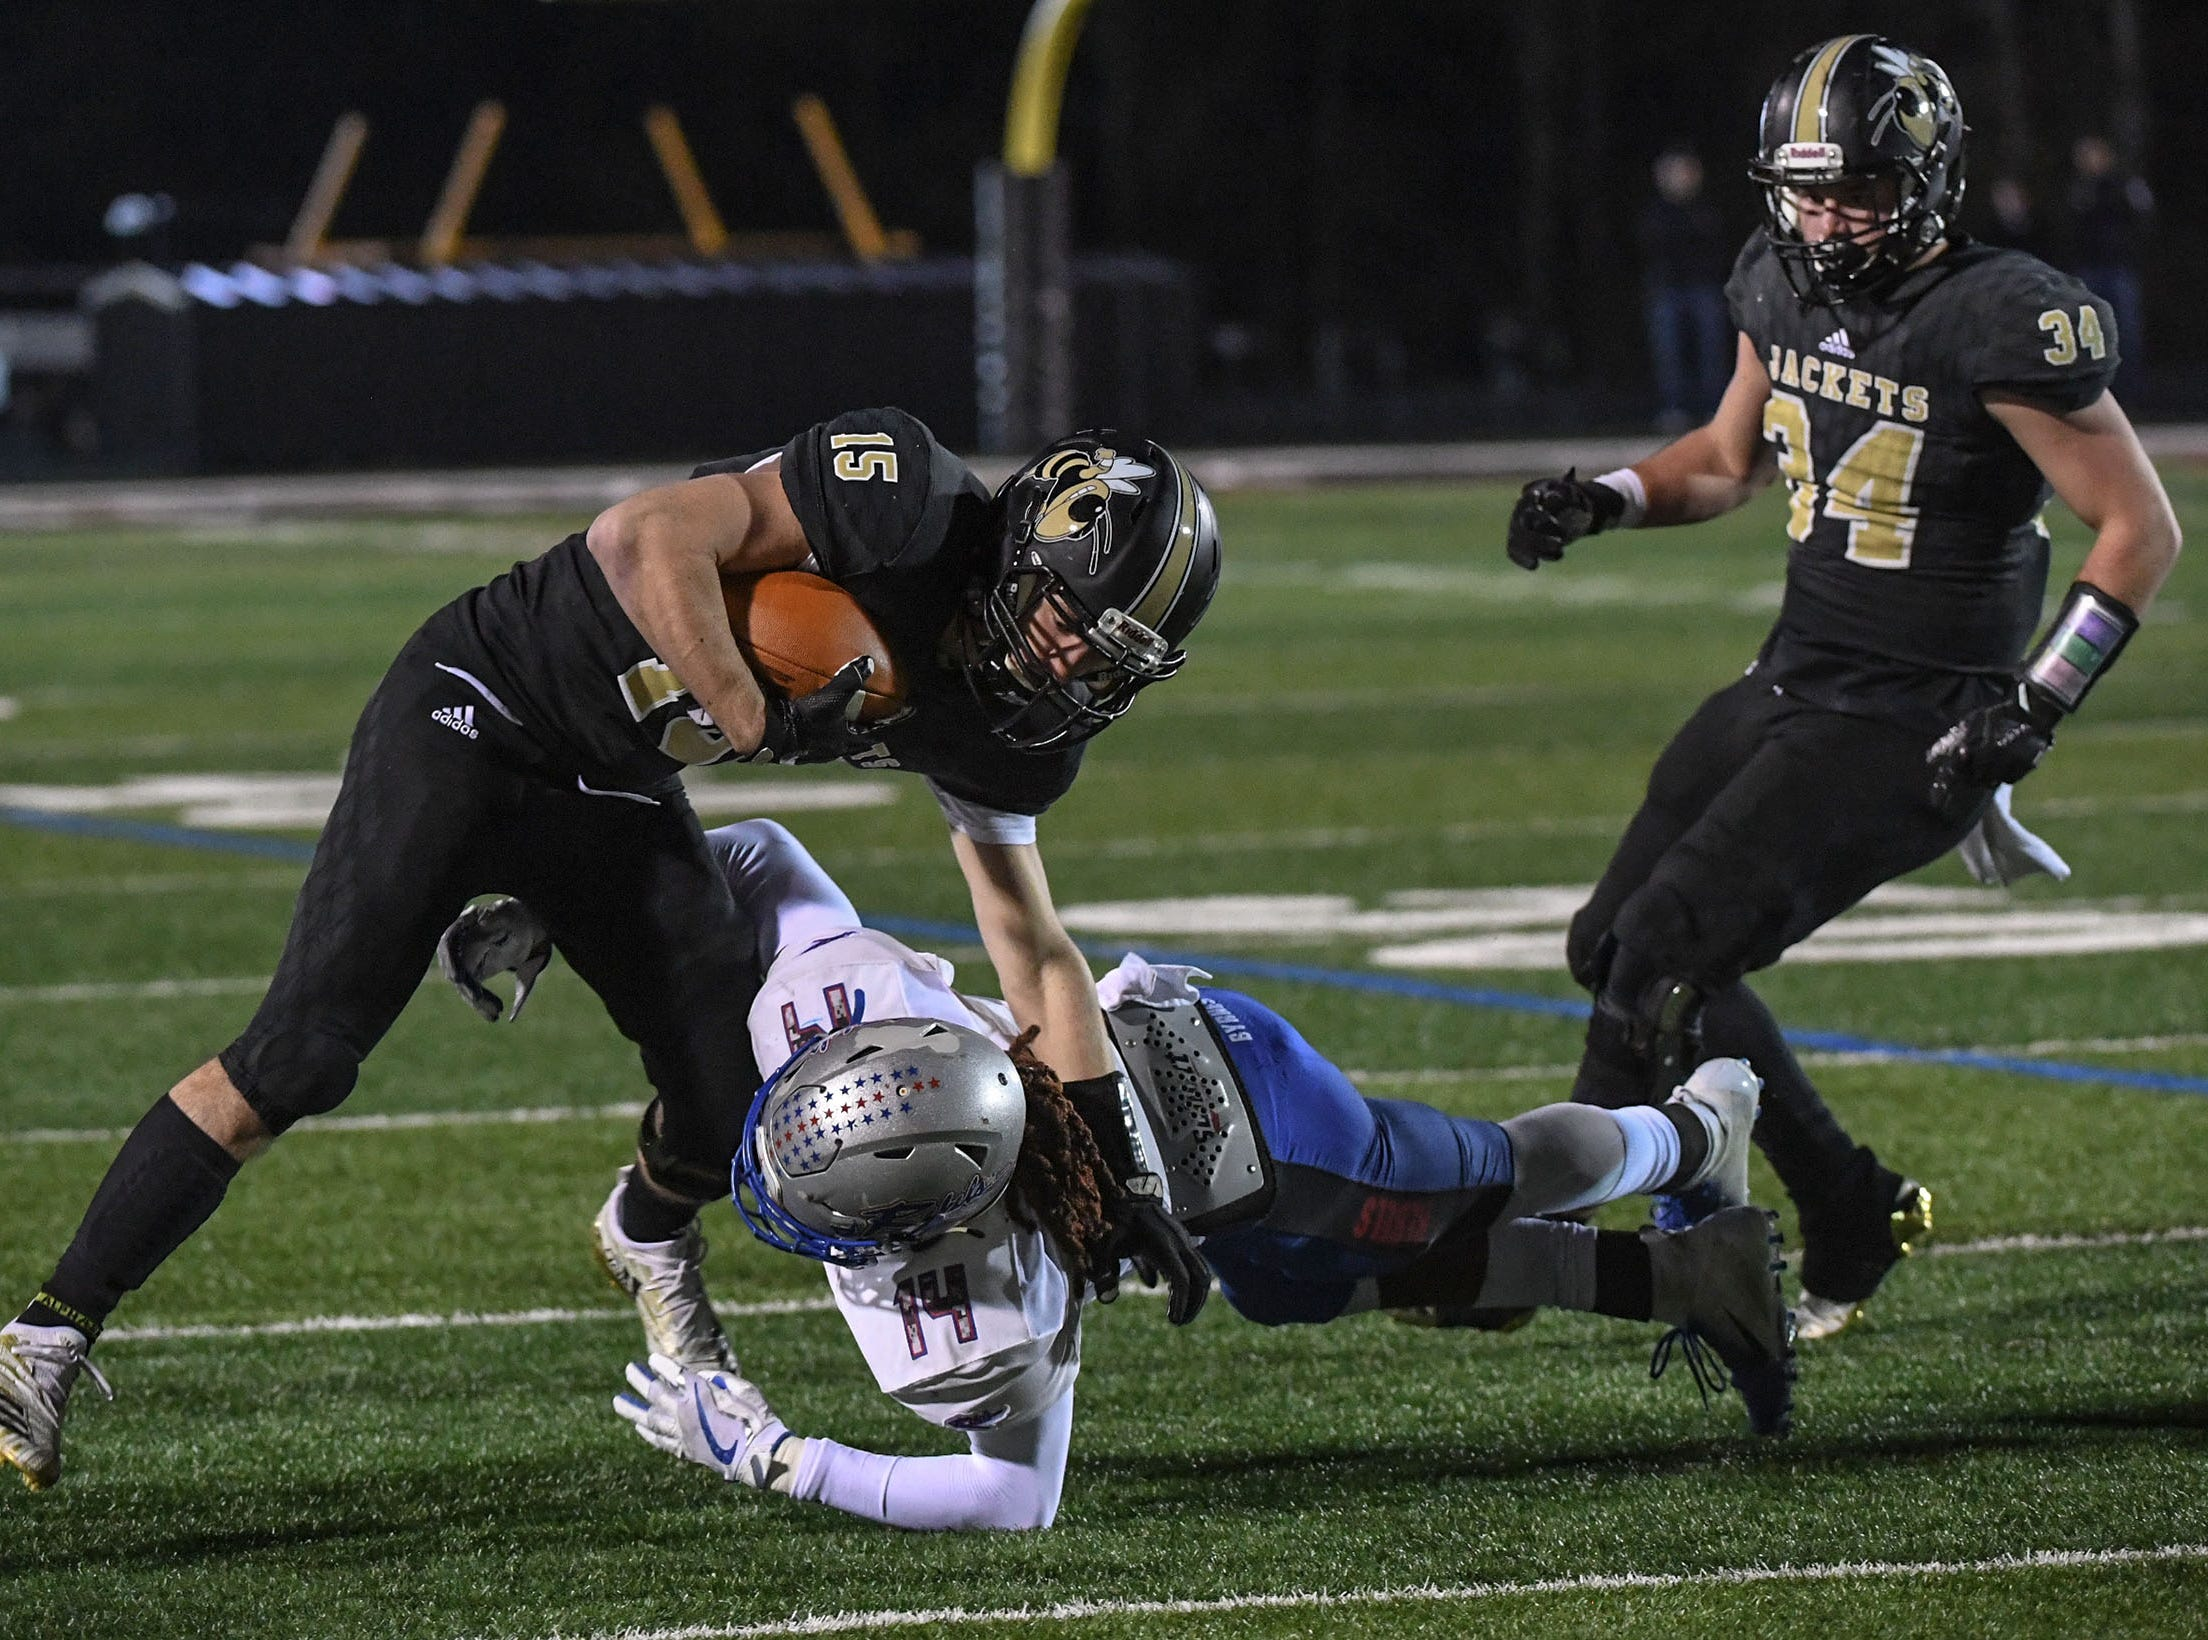 TL Hanna junior Jackson Pusey (15) is tackled by Byrnes junior Buddy Mack (14)  during the first quarter of the Class AAAAA state playoffs at TL Hanna High School in Anderson on Friday, November 30, 2018.